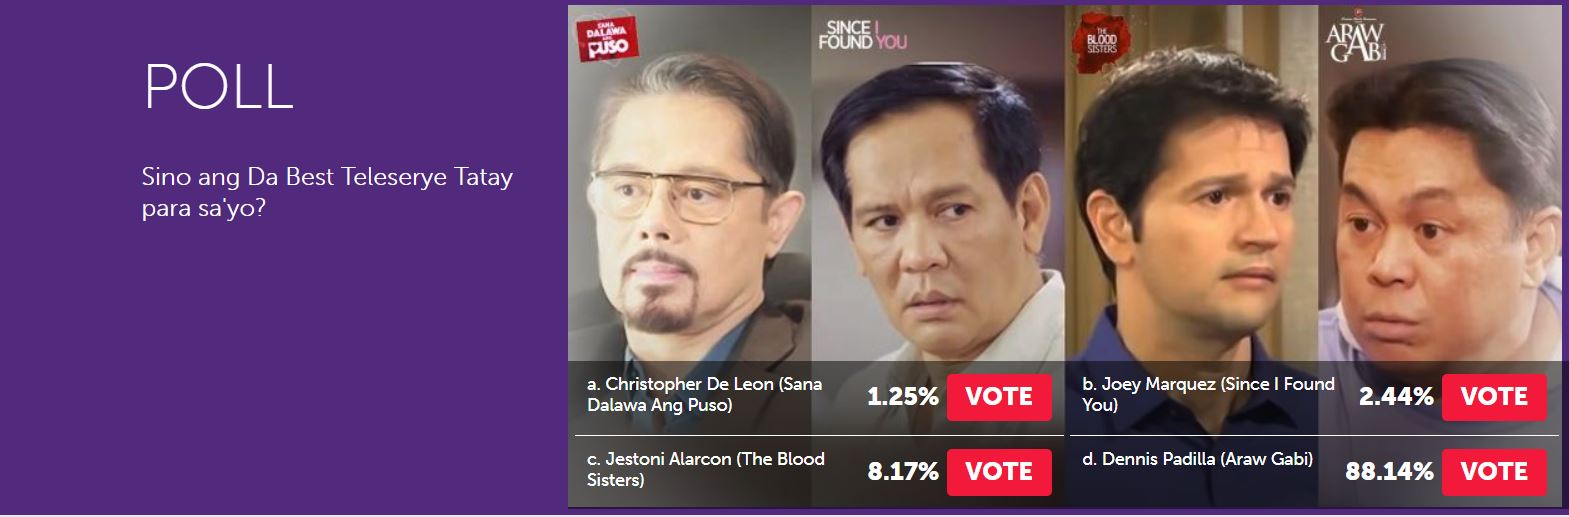 FATHER S DAY 2018 Poll shows Papay Dennis Padilla as the best teleserye tatay 2